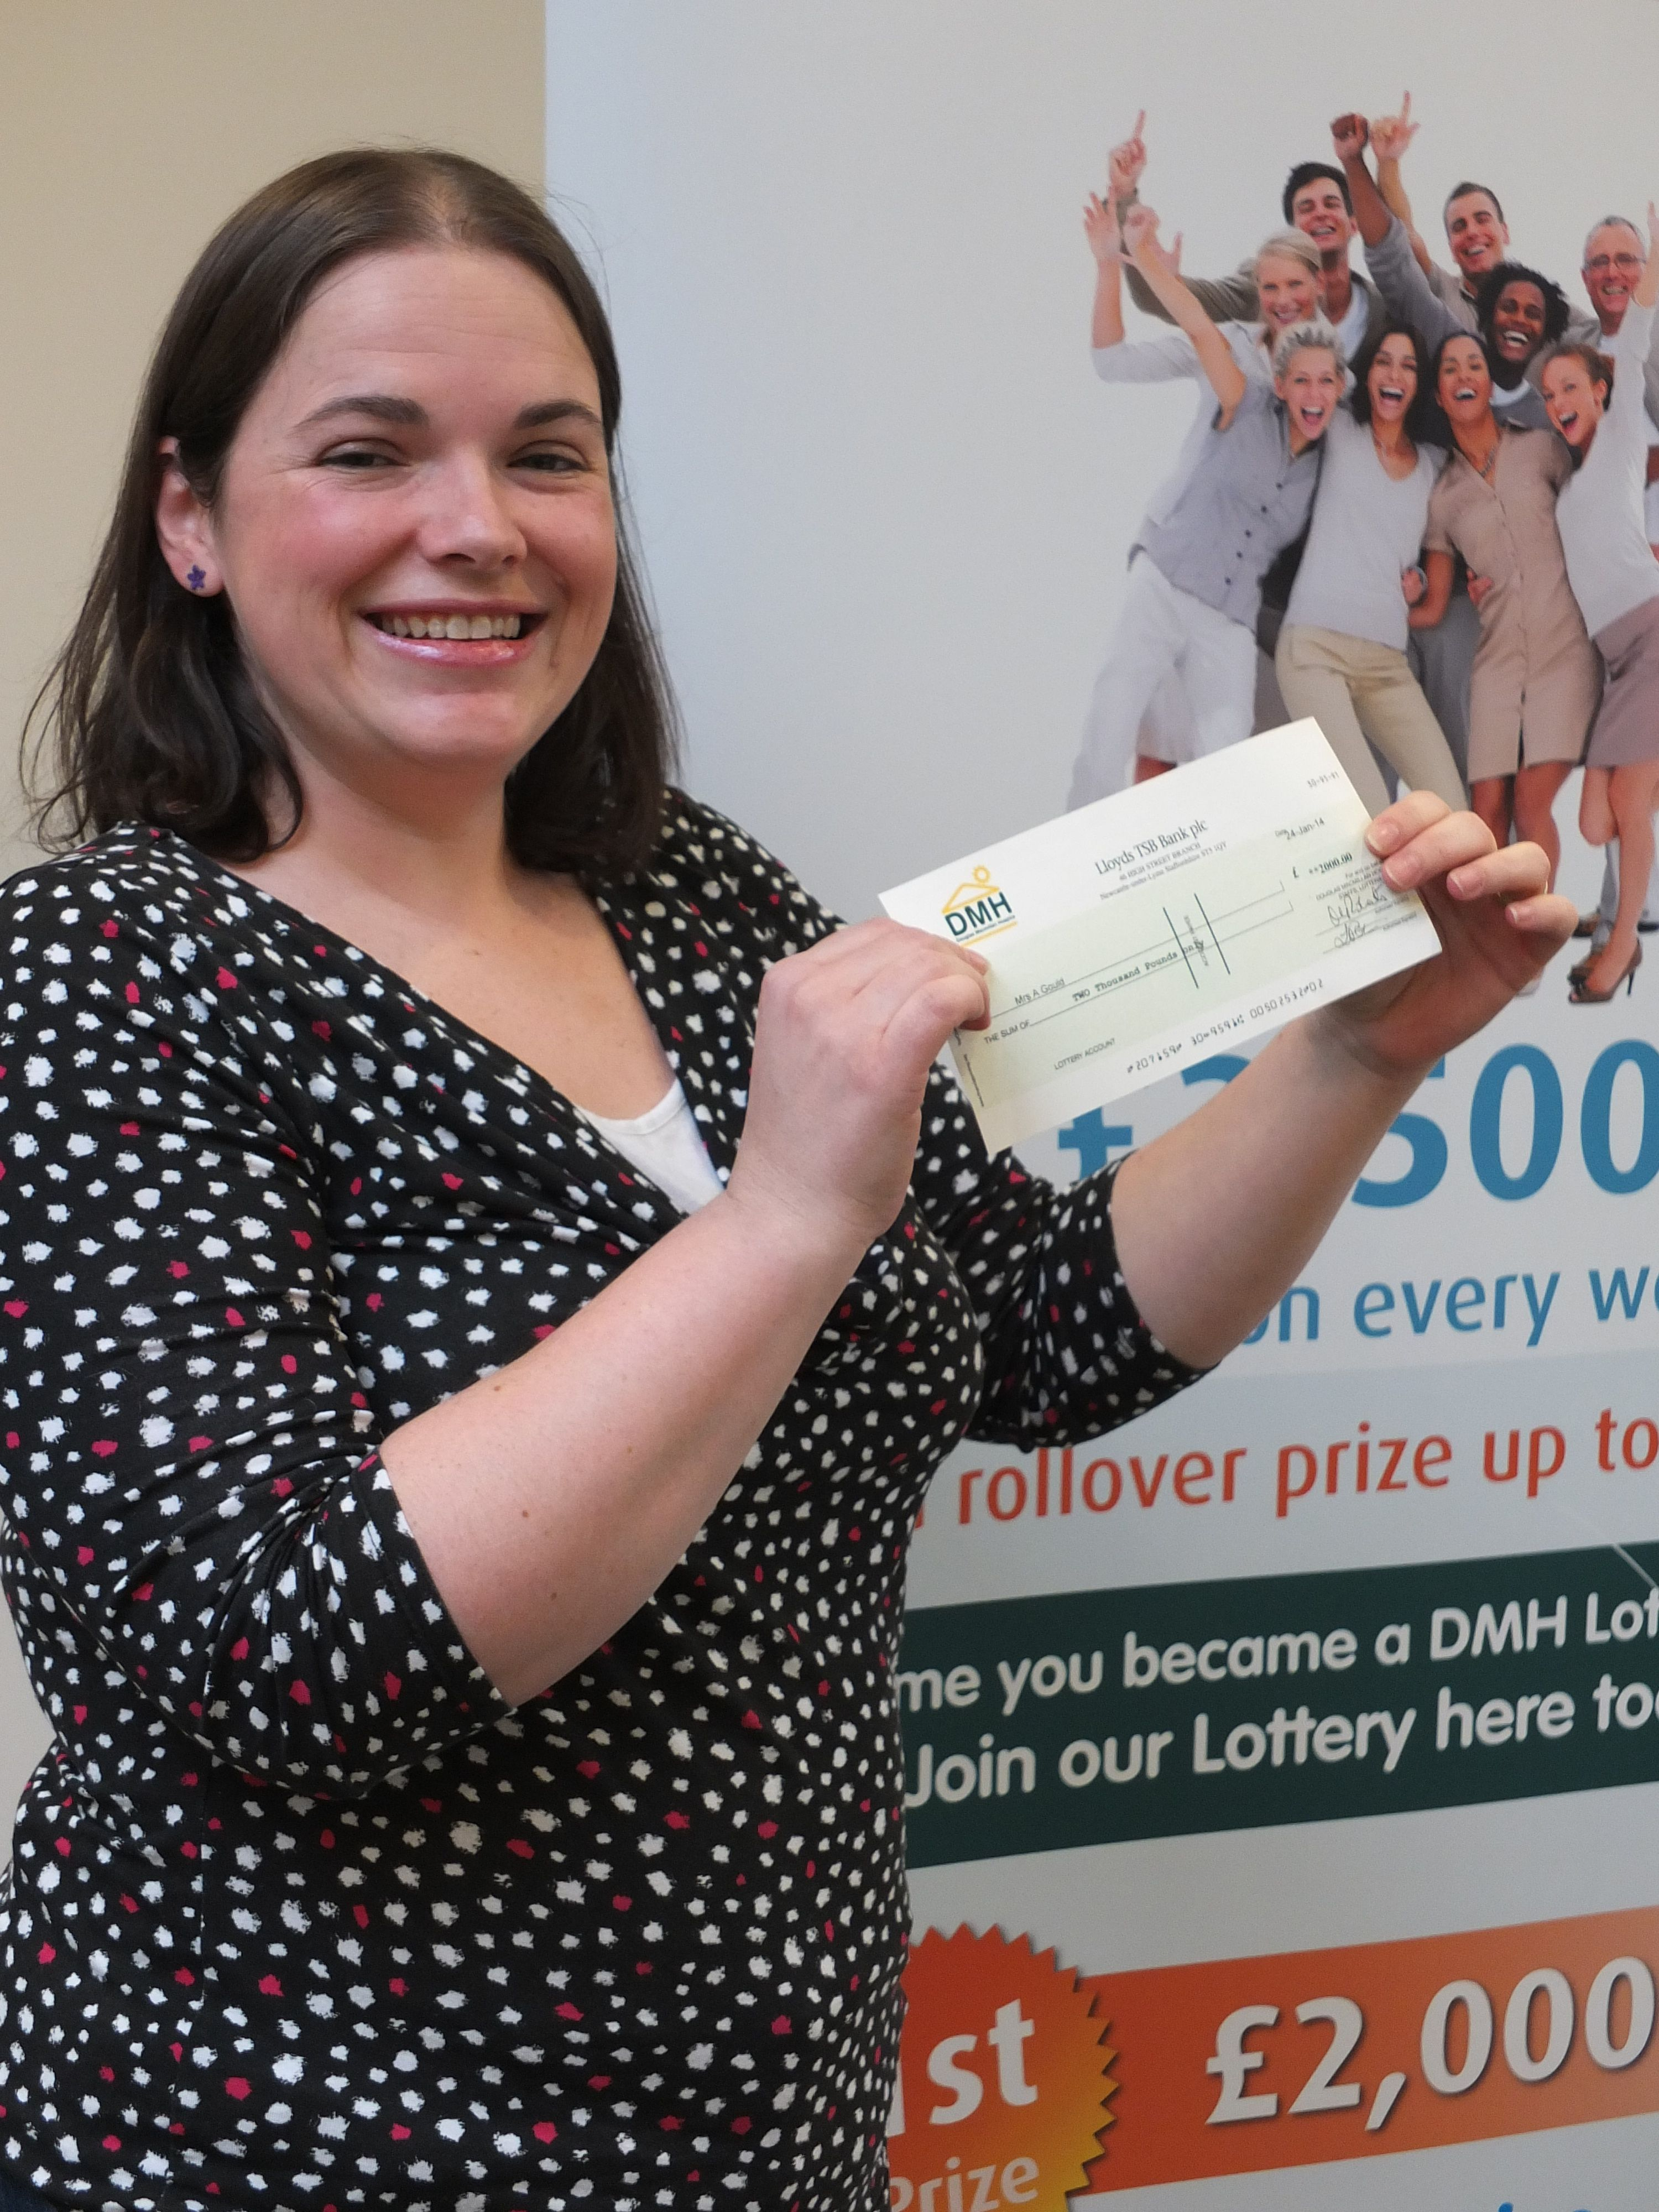 Here's Amanda Gould who scooped the £2000 top prize in our weekly draw recently   Find out more about the DMH Lottery here - http://www.dmhospice.org.uk/get-involved/lottery